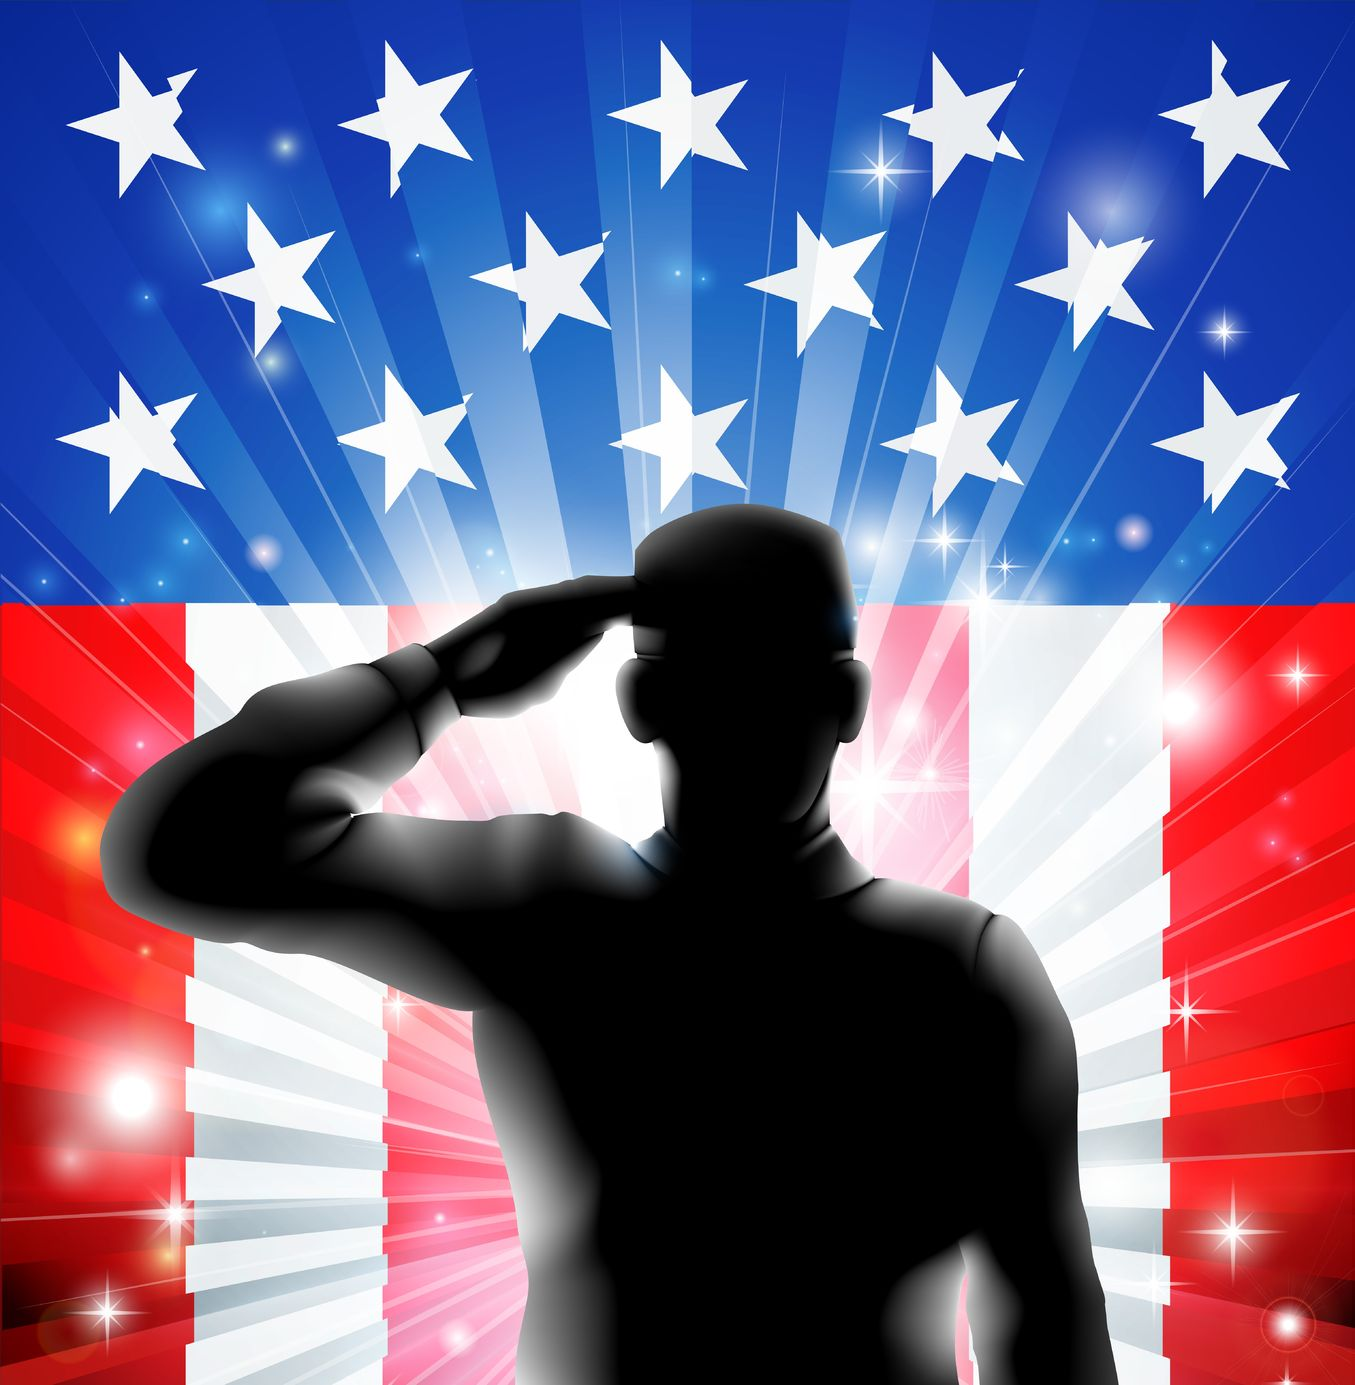 soldier-us-flag